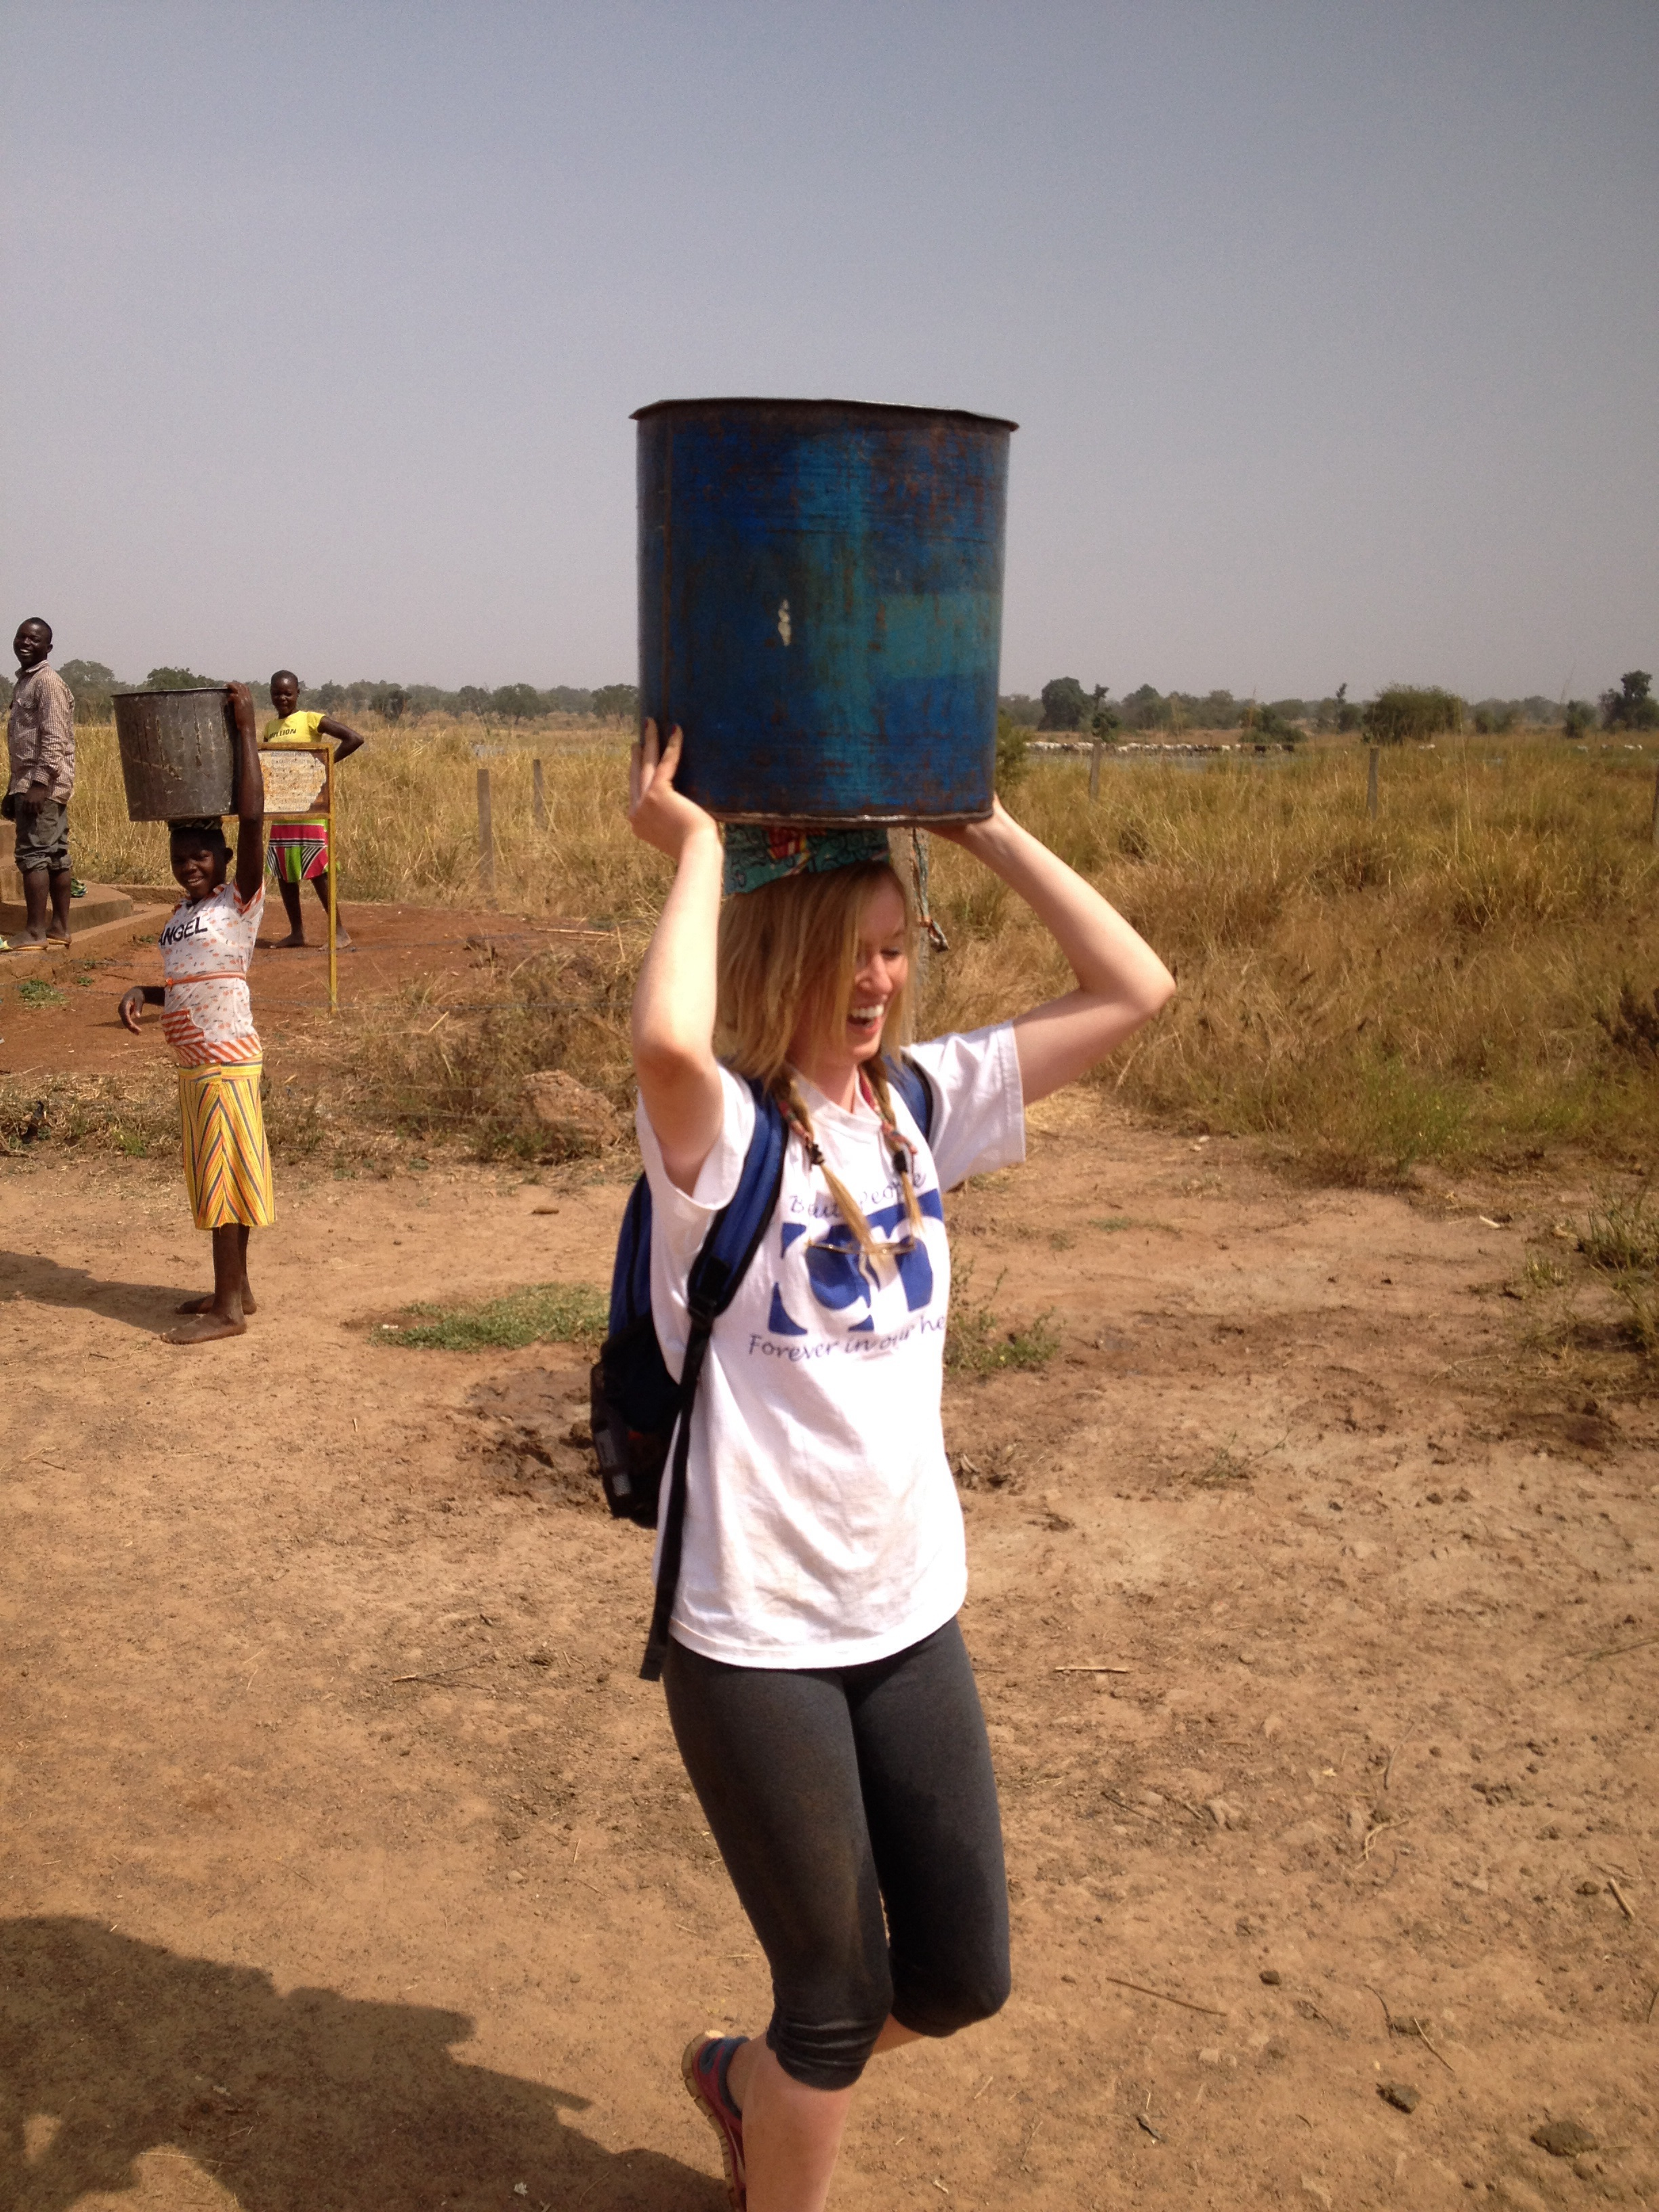 Caroline helps out to collect water